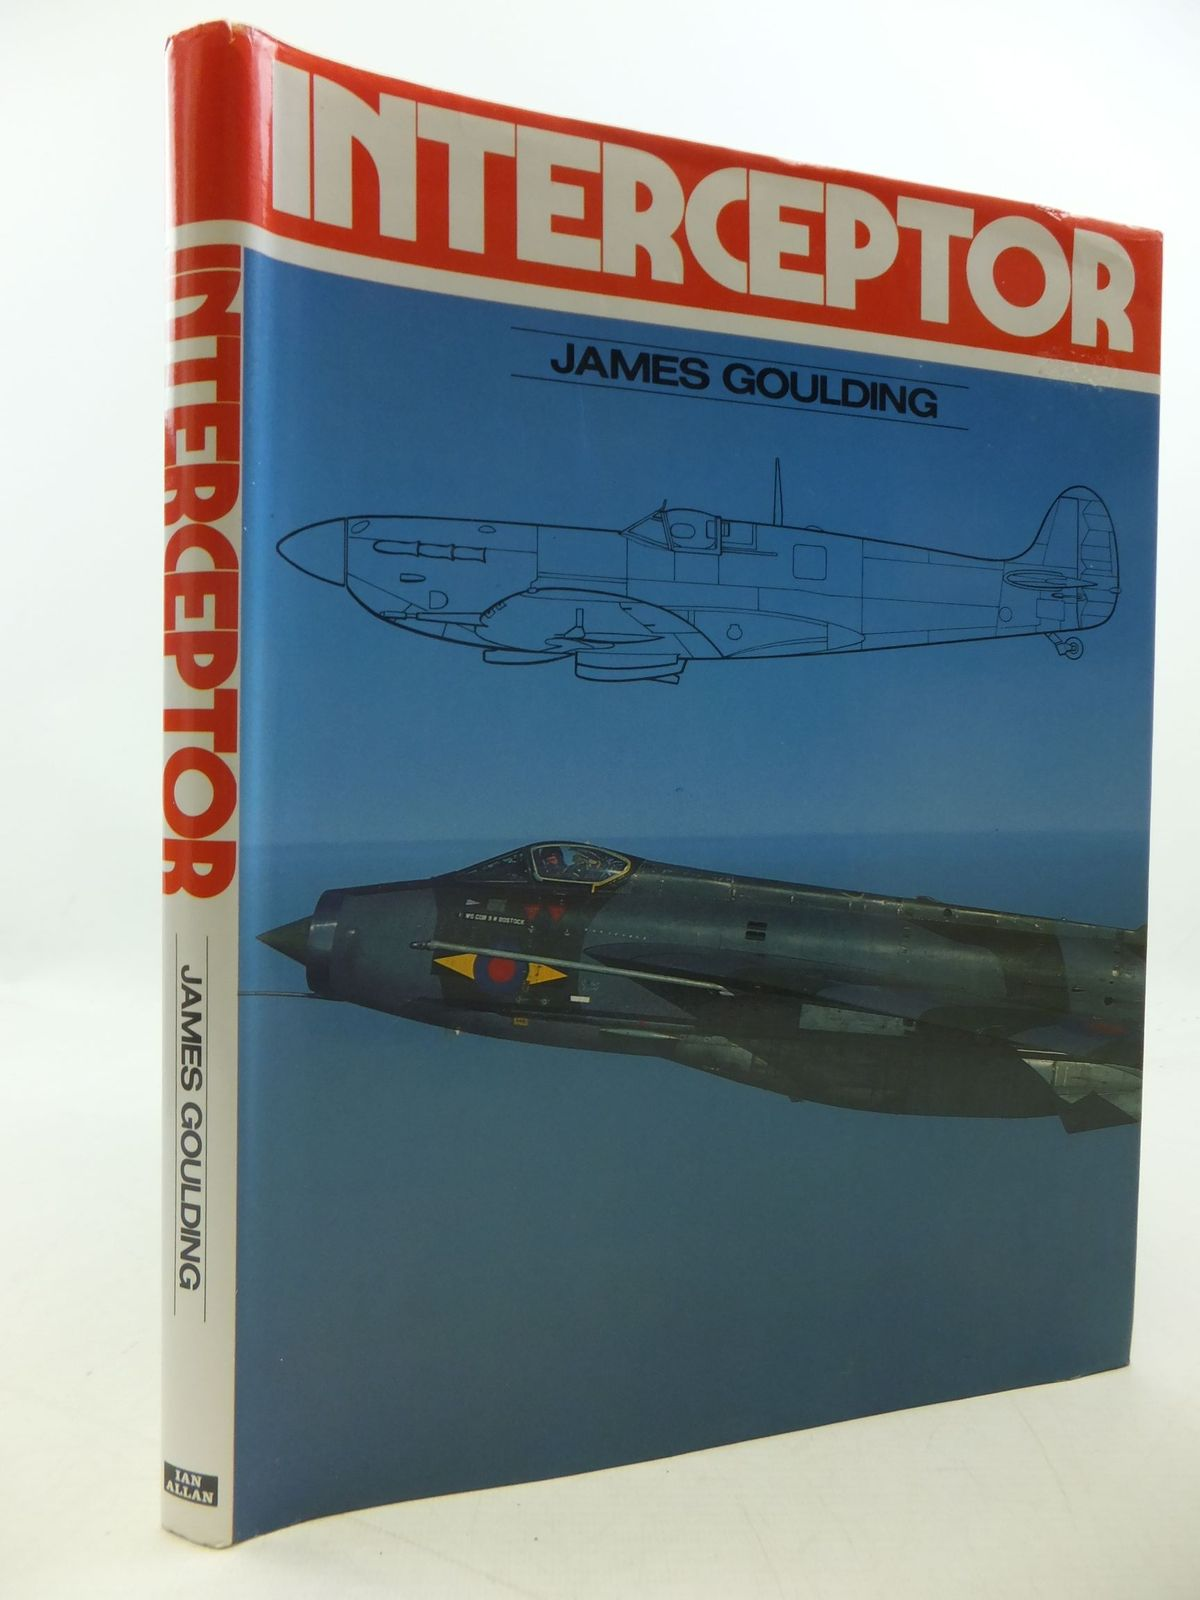 Photo of INTERCEPTOR RAF SINGLE-SEAT MULTI-GUN FIGHTERS written by Goulding, James published by Ian Allan Ltd. (STOCK CODE: 1710079)  for sale by Stella & Rose's Books